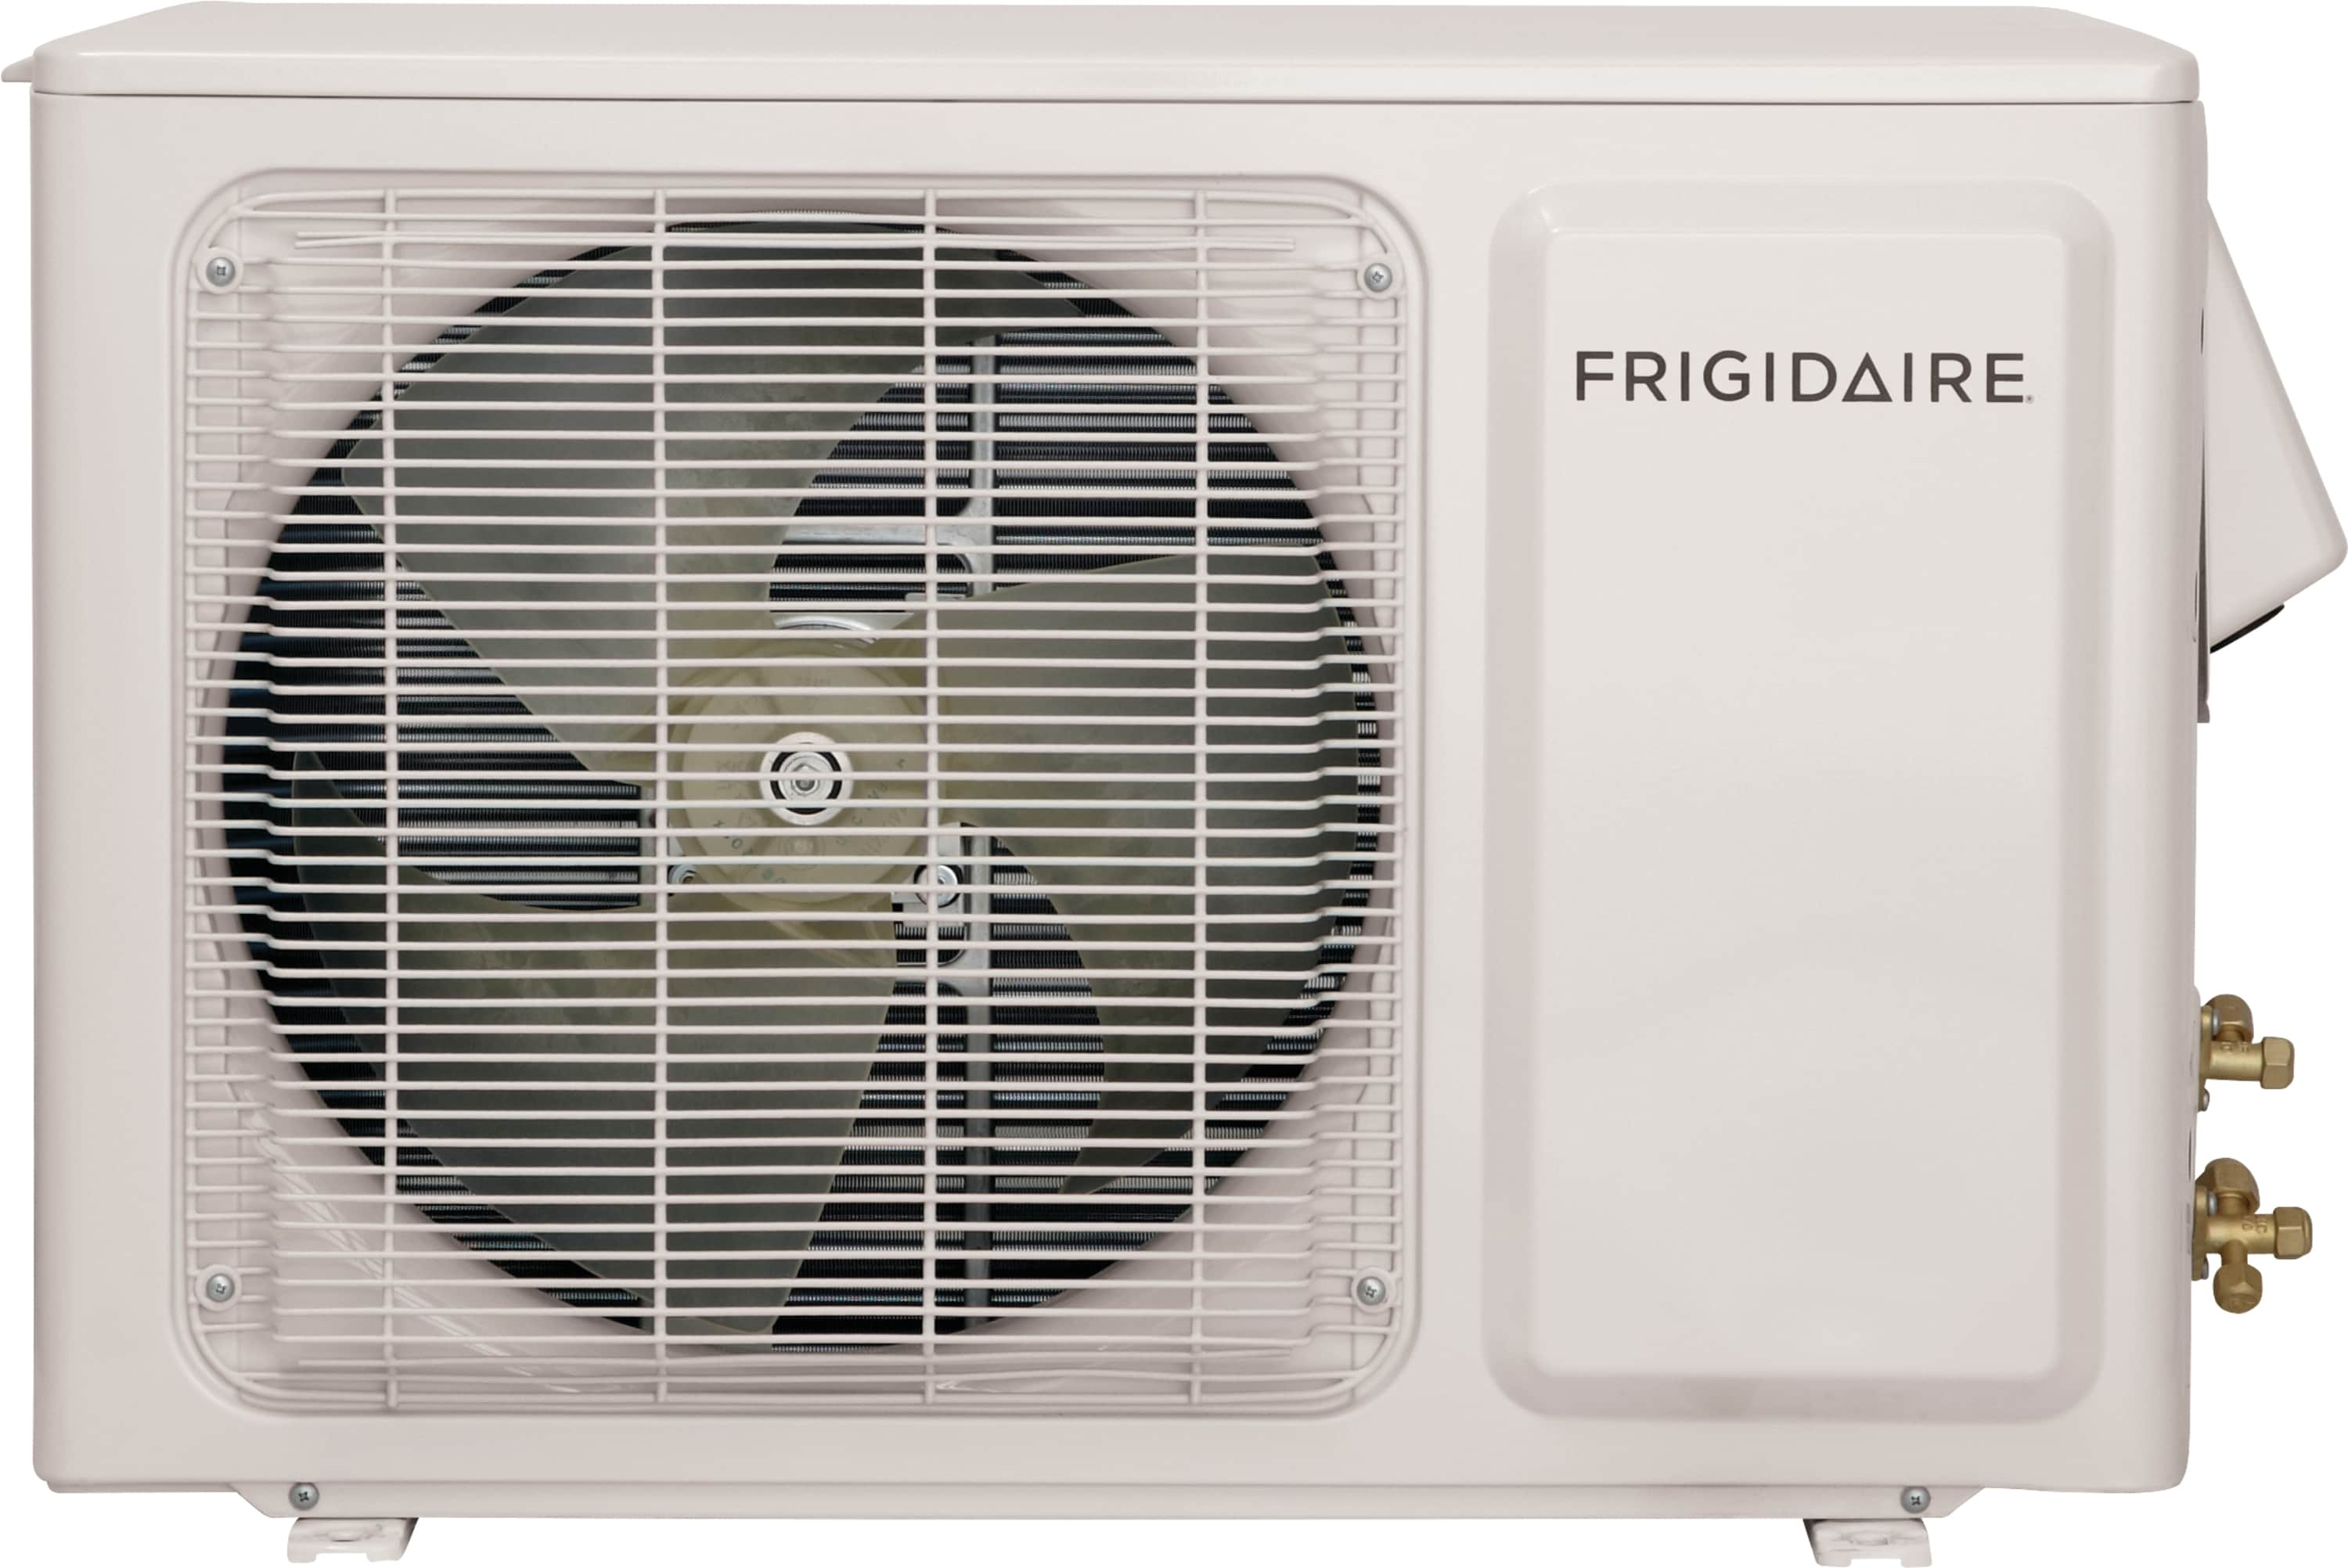 Ductless Split Air Conditioner Cool and Heat- 12,000 BTU, Heat Pump- 115V- Outdoor unit